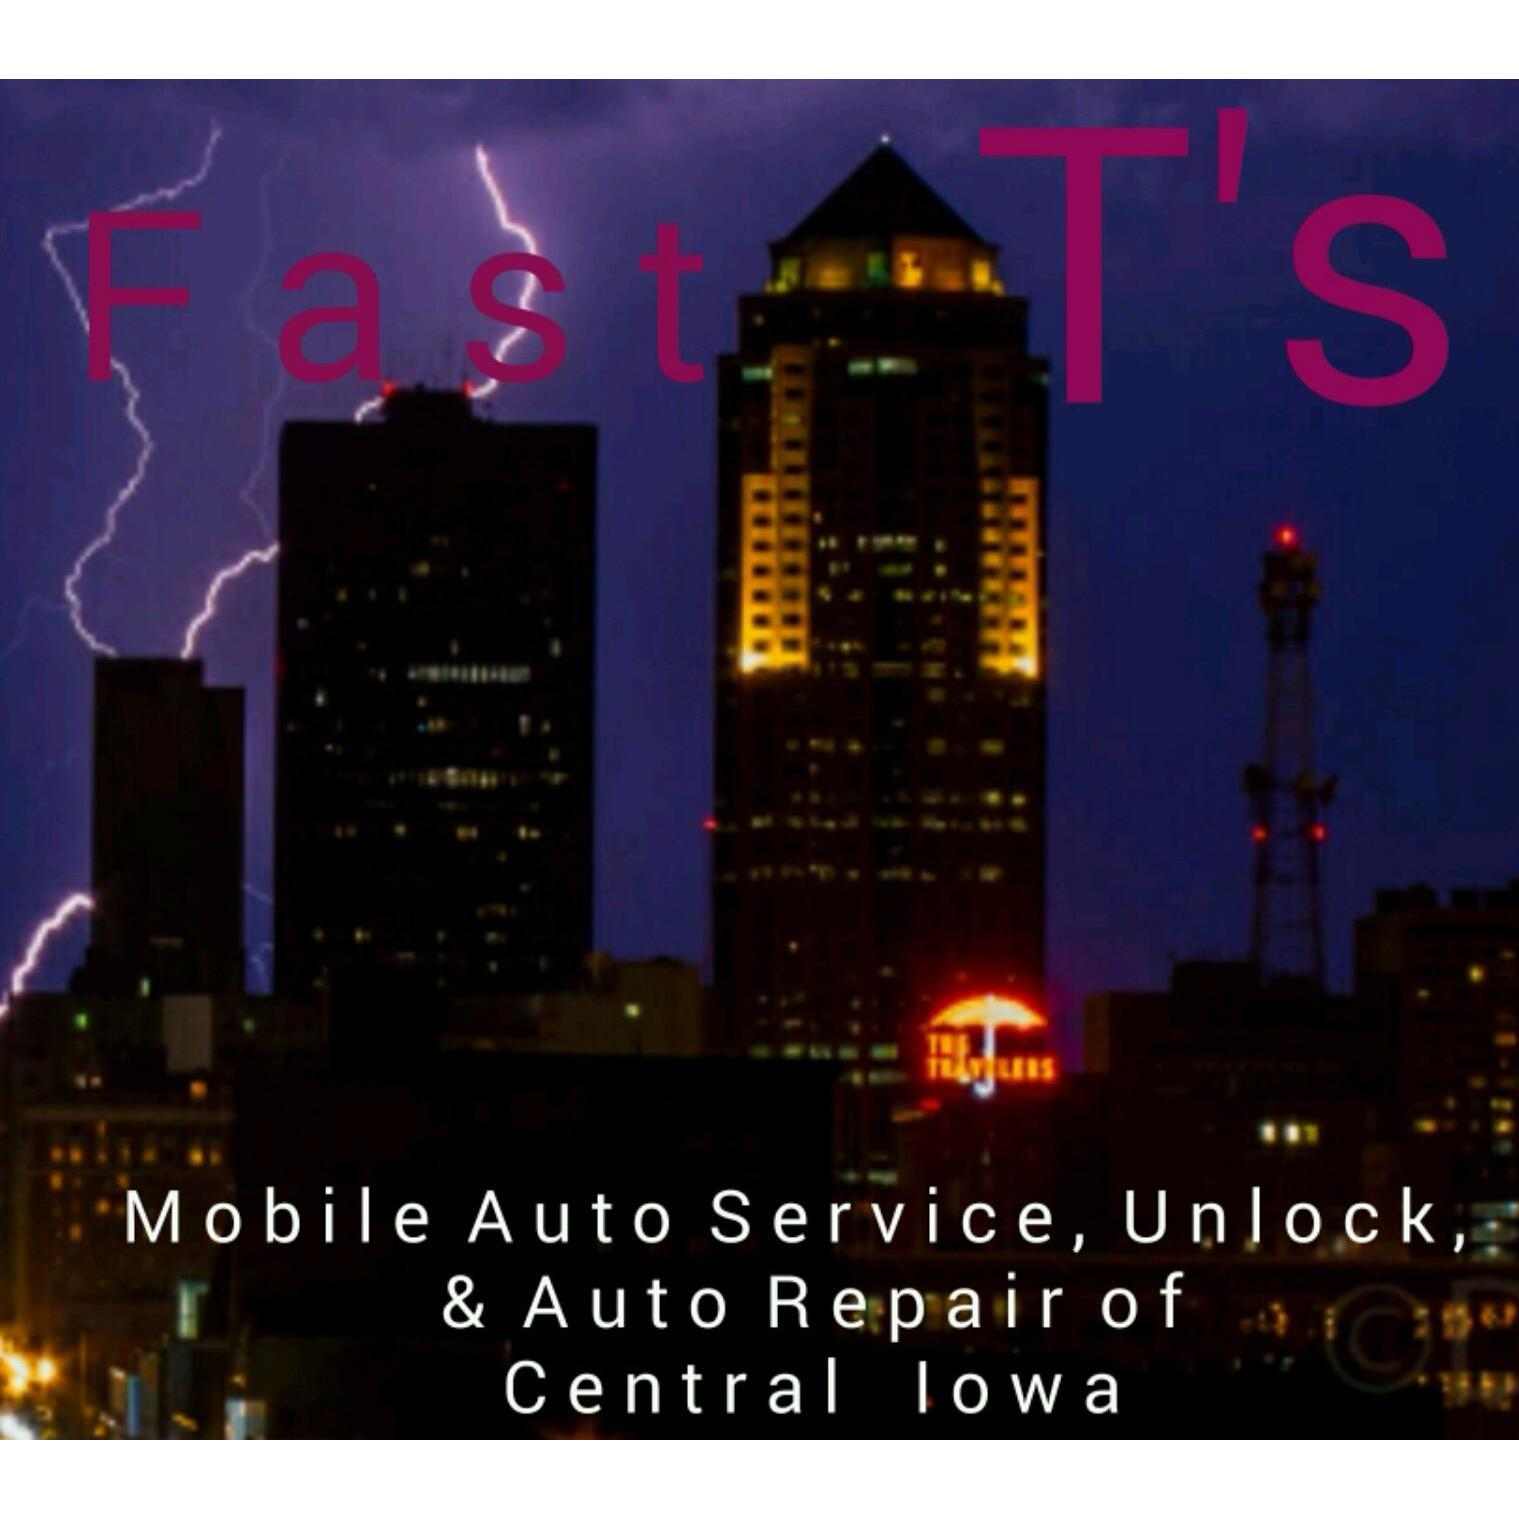 Fast T's Mobile Auto Service & Roadside Assistance